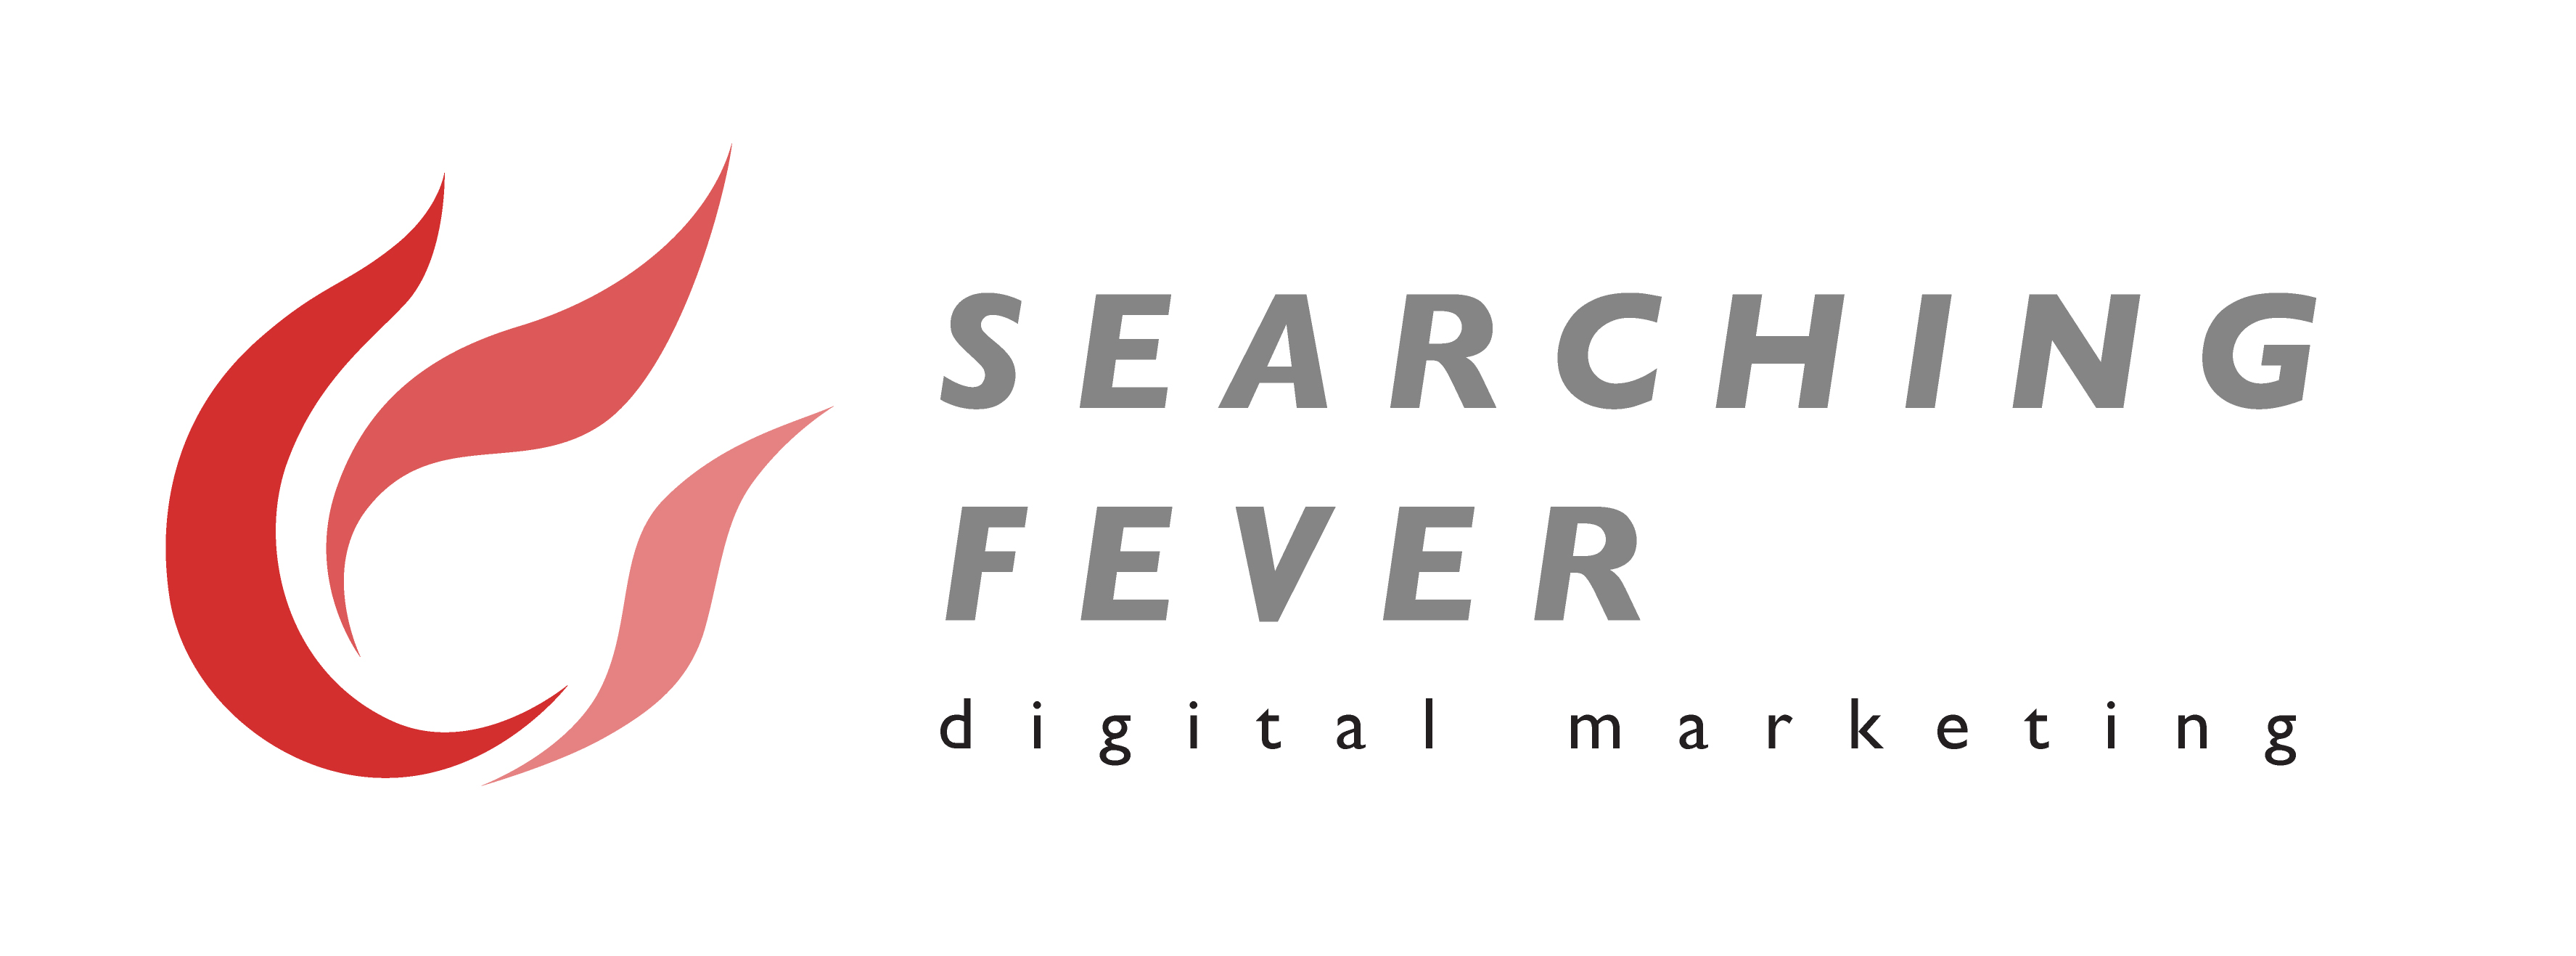 Searching Fever is premier SEO & Digital Marketing Agency headquartered in New York